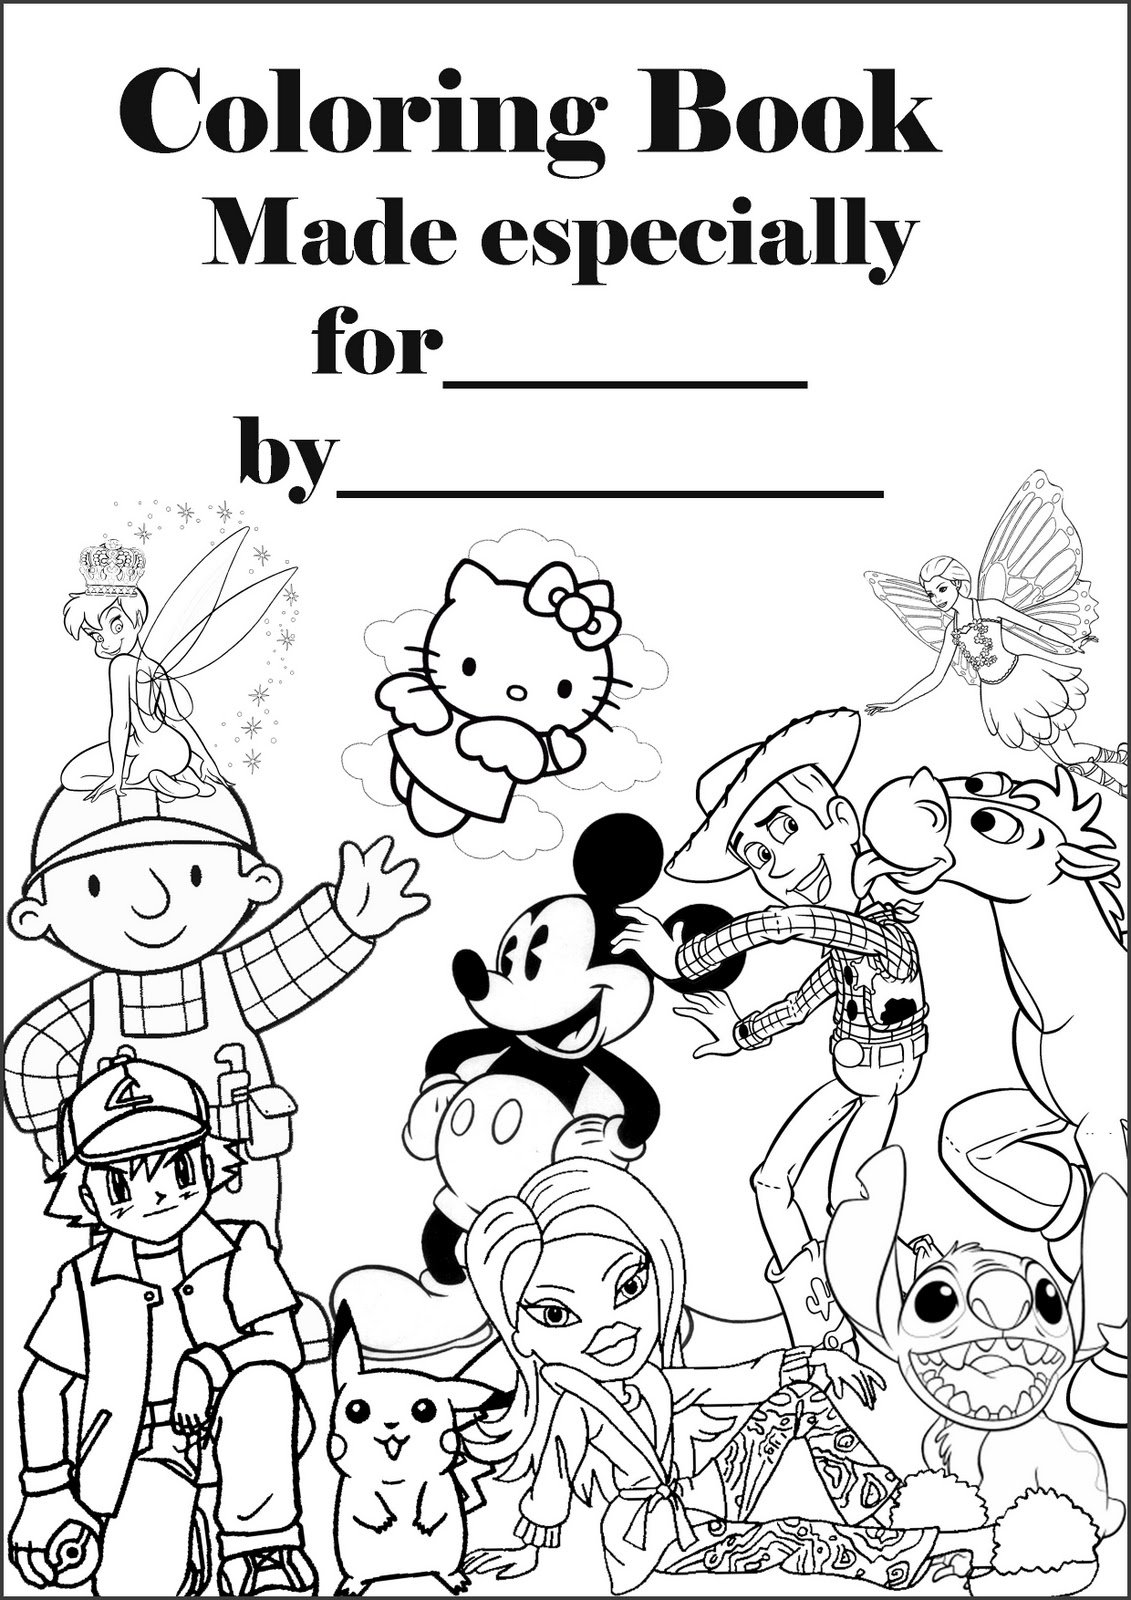 Make Your Own Coloring Book  Print This 'cover' And A Dozen Or So